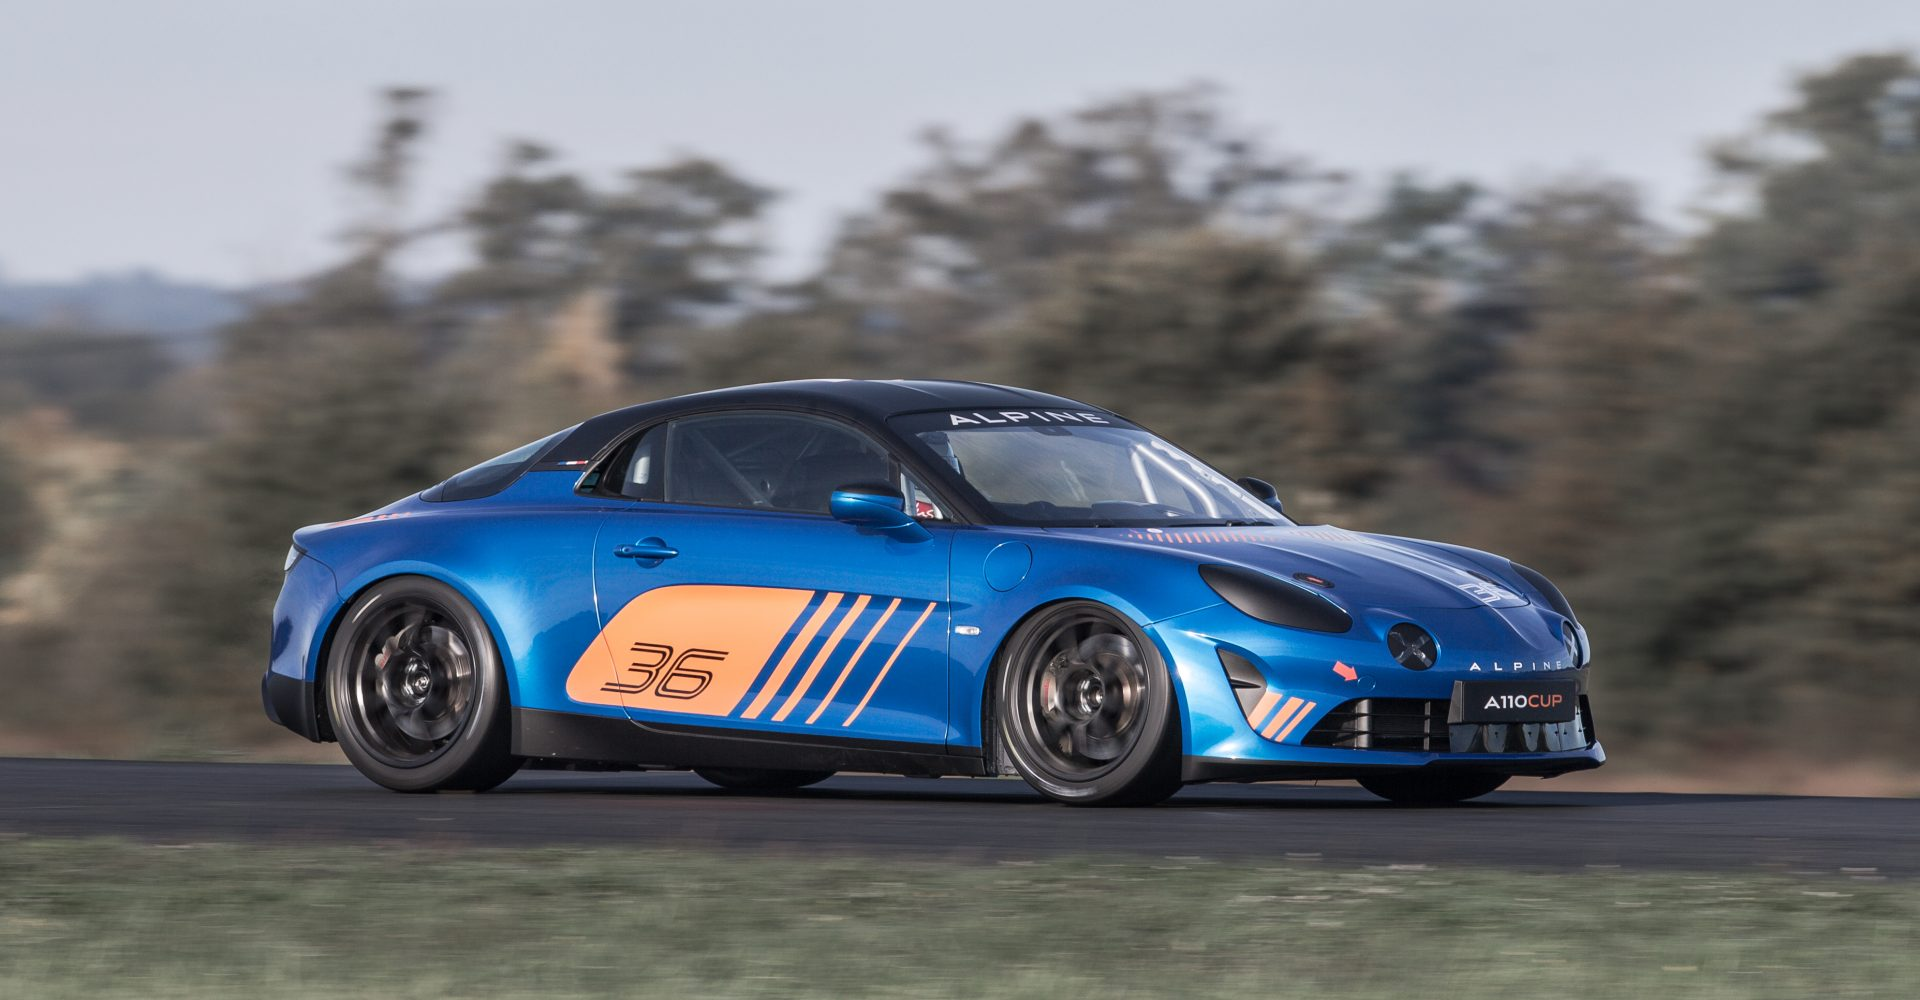 Are you ready for Alpine's 270bhp track-only A110 Cup?